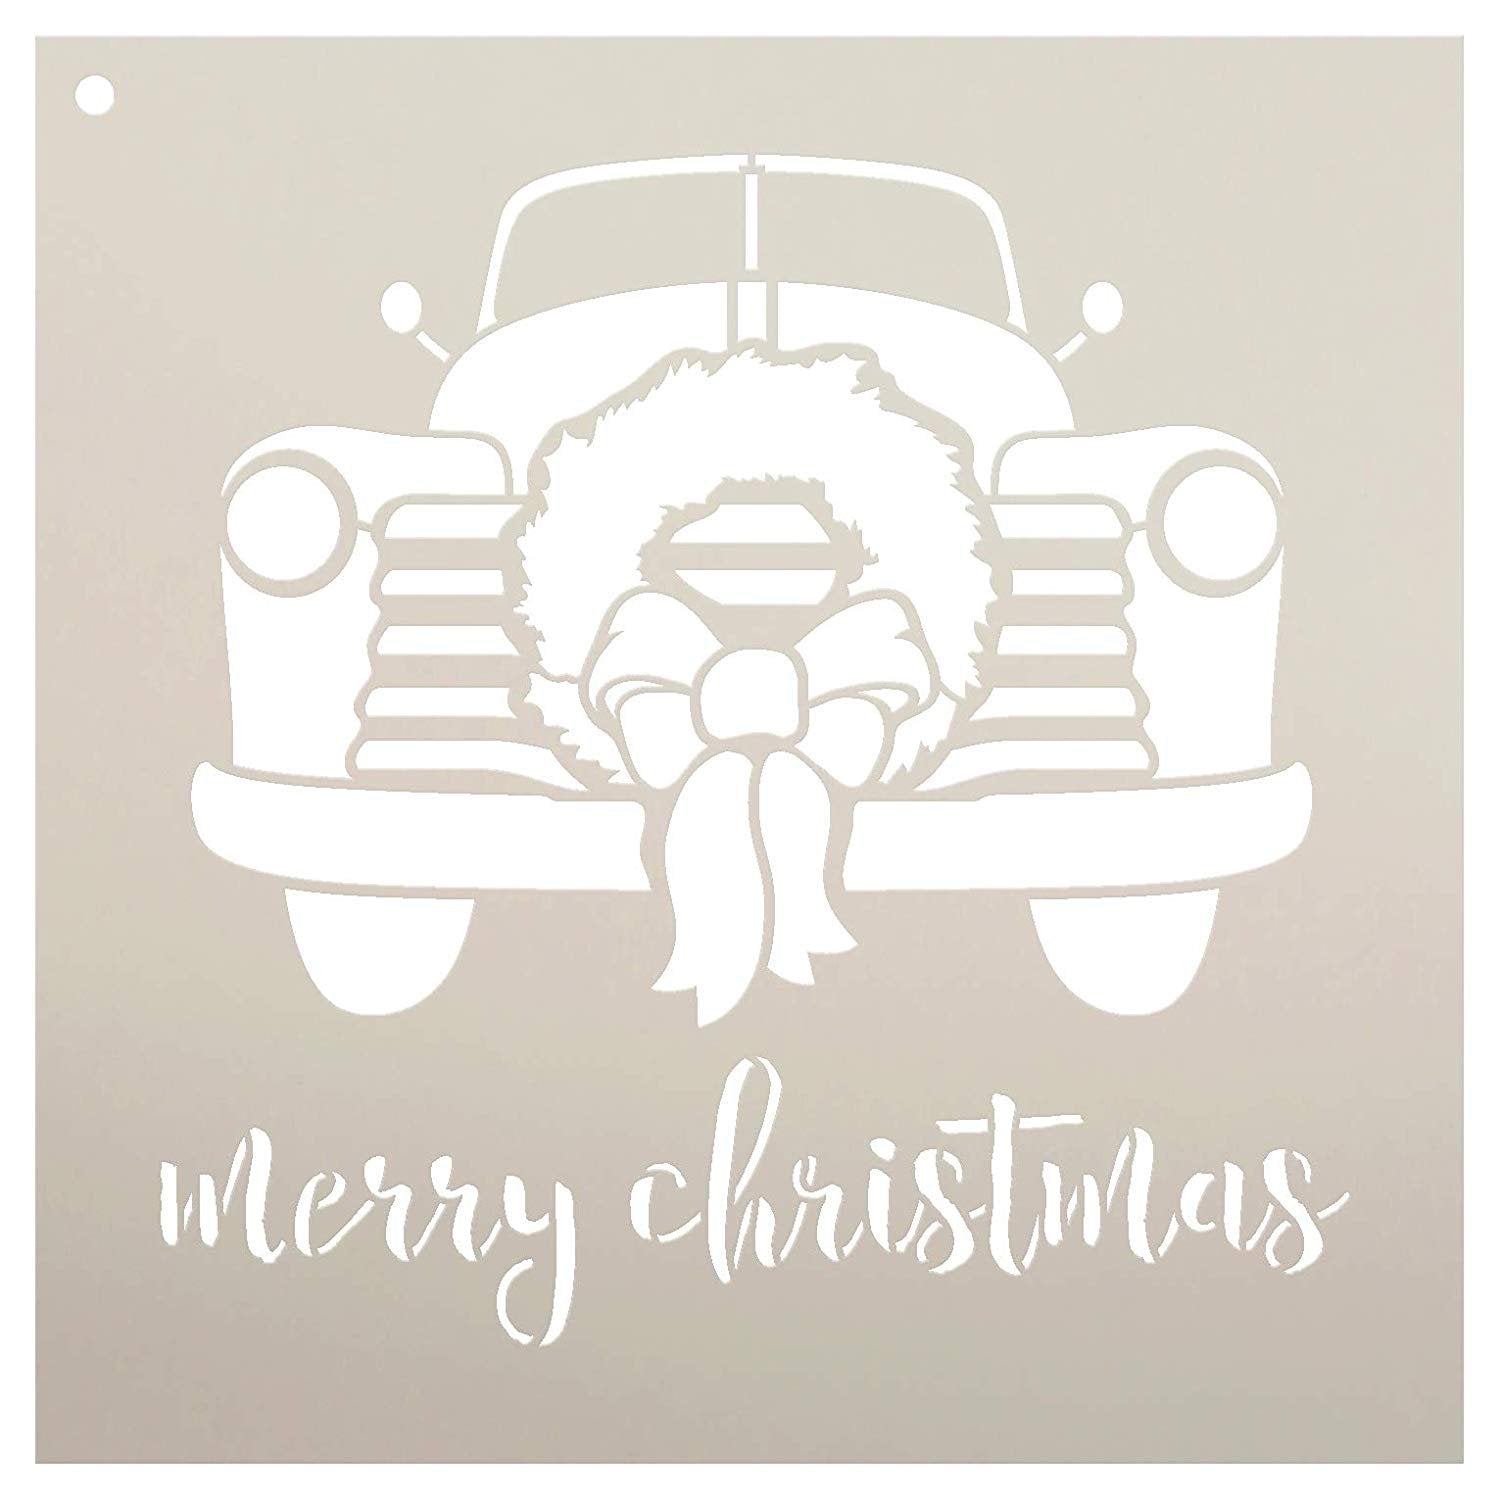 Merry Christmas Truck with Wreath Stencil - by StudioR12 | Reusable Mylar Template | Use to Paint Wood Signs - Pallets - DIY Christmas Season Decor - Select Size